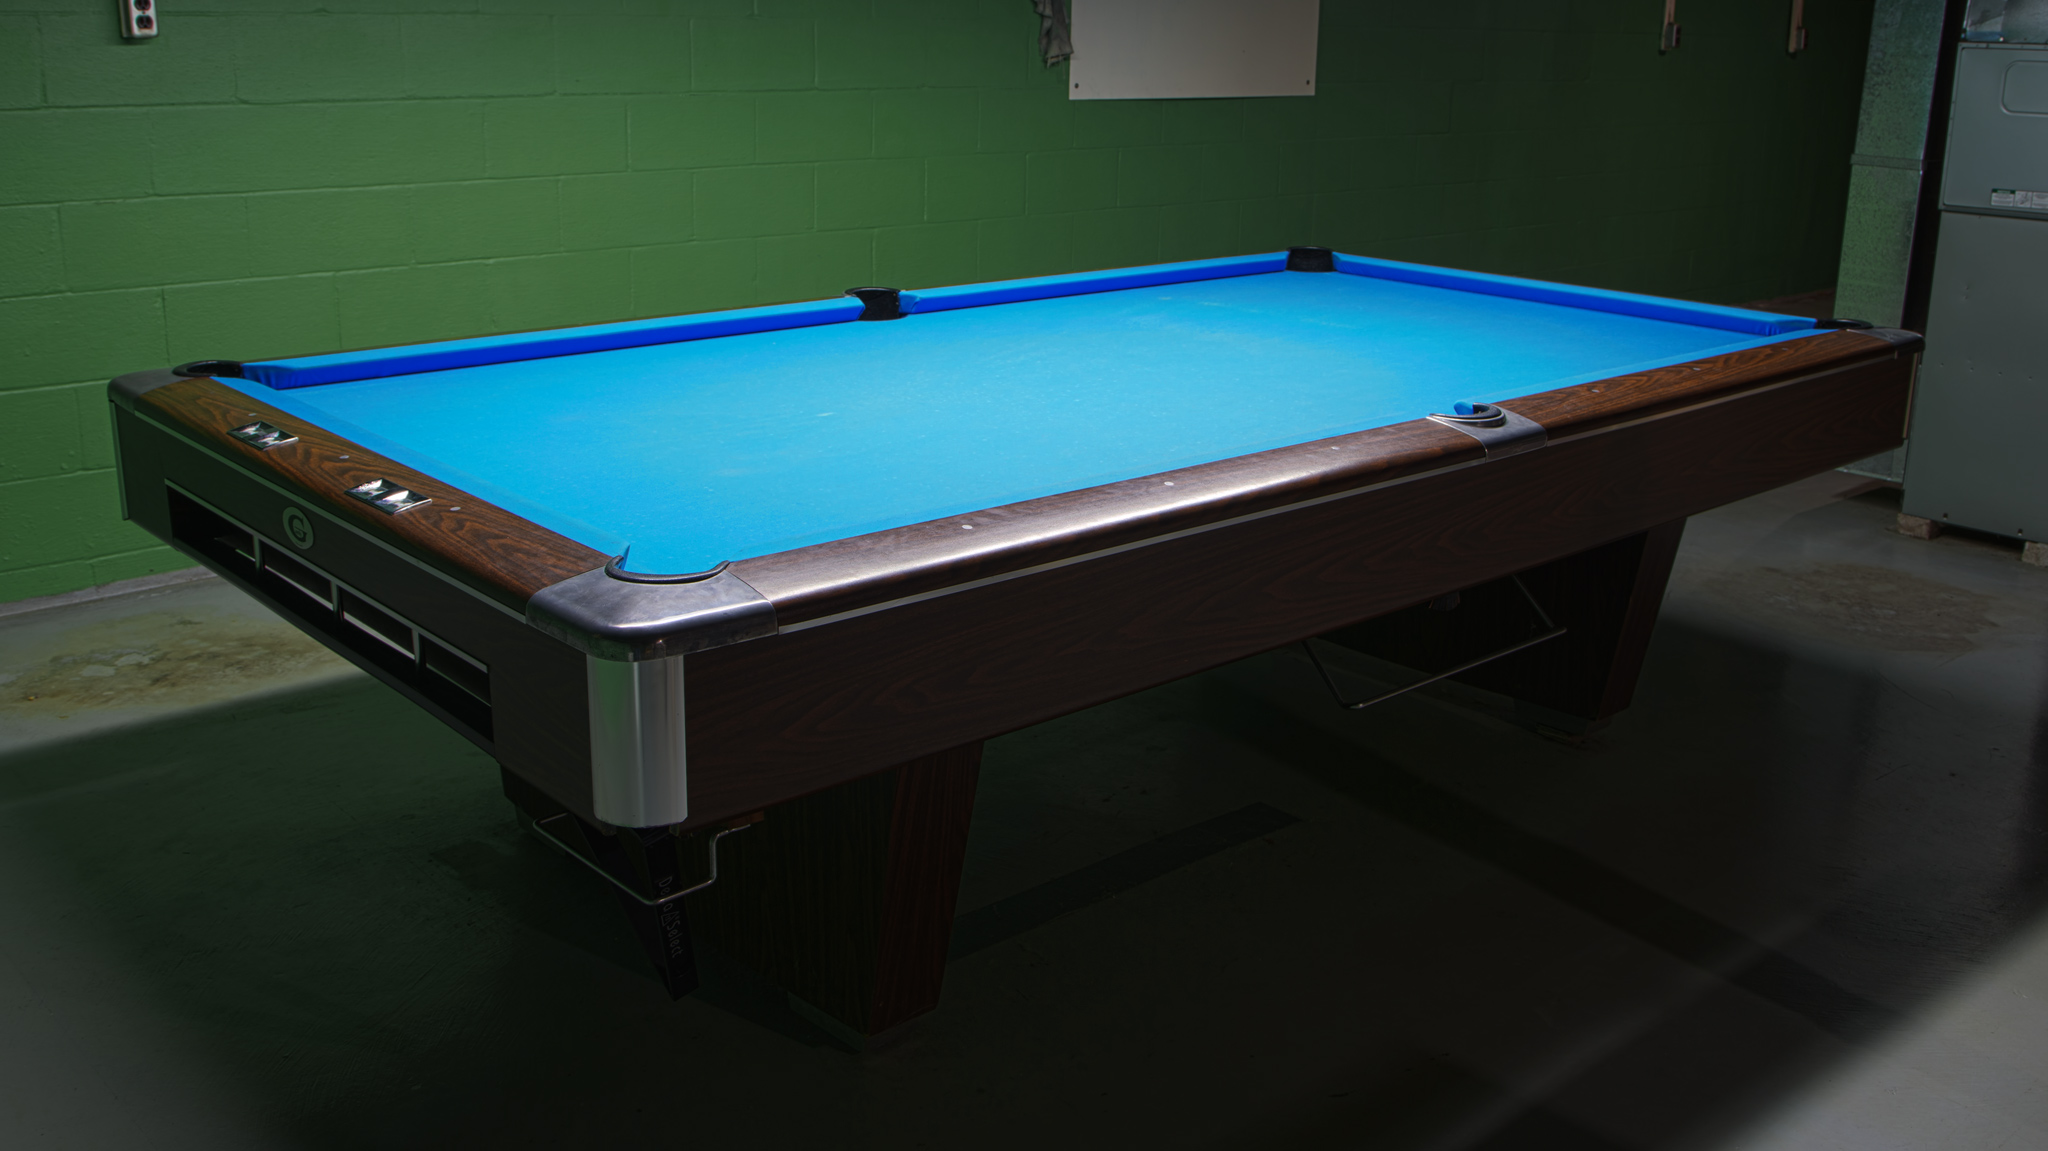 Gandy Big G For Sale - Gandy pool table